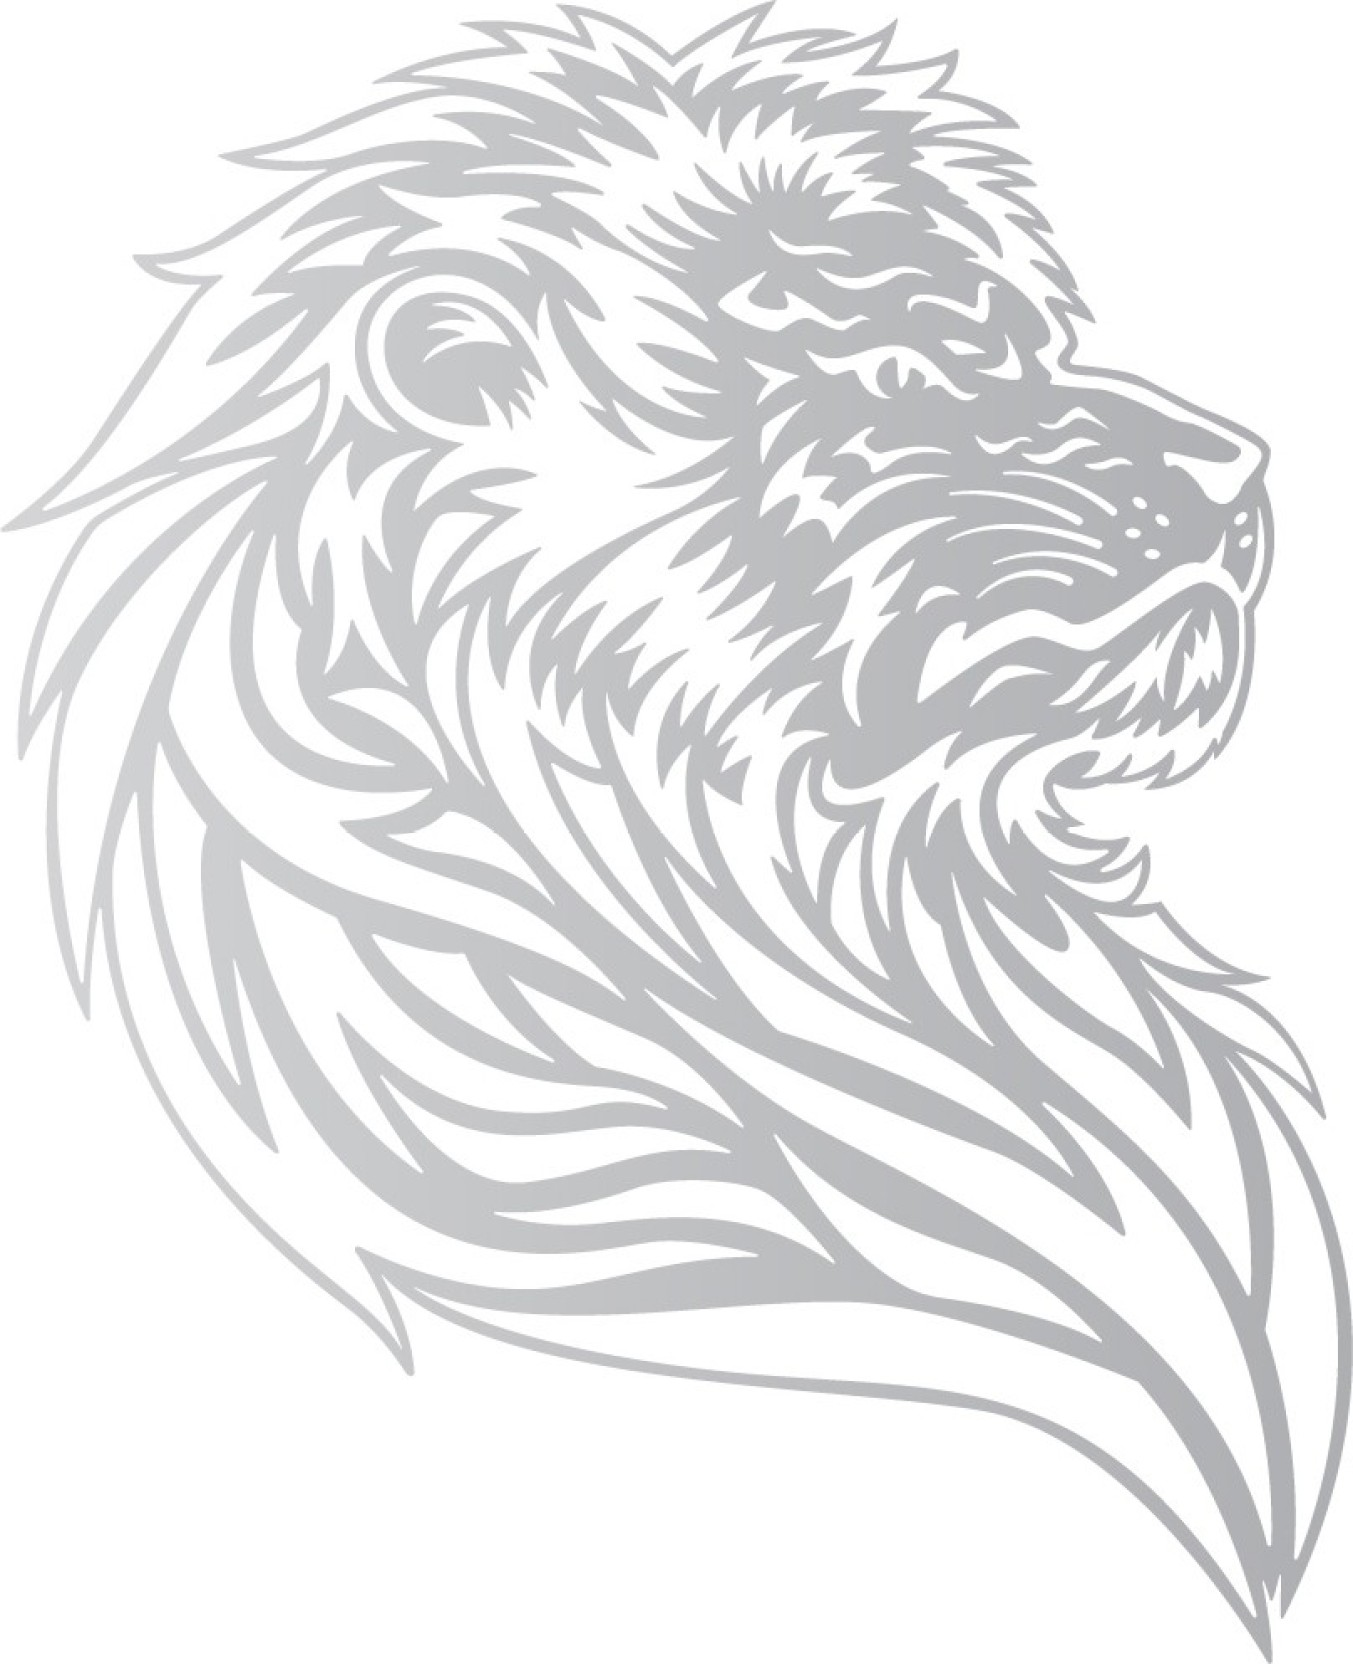 Wall design bike graphics and stickers lion pride silver colour reflective vinyl motorcycle design sticker pack of 1